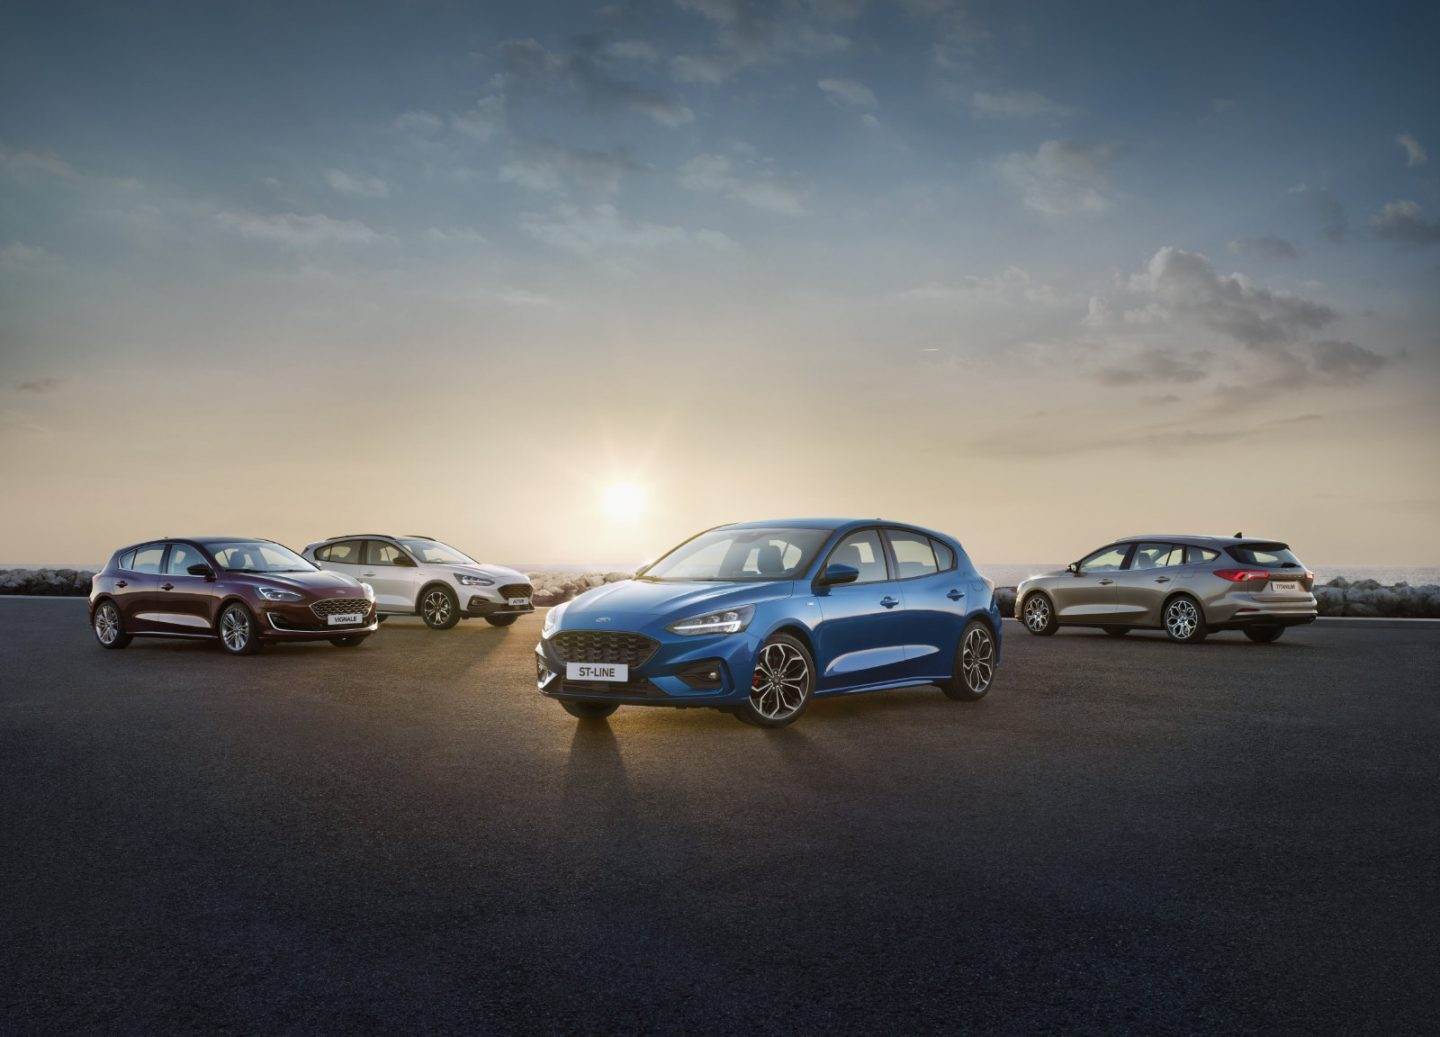 Ford launches more muscular, flowing 2018 Focus, with technological firsts for the segment